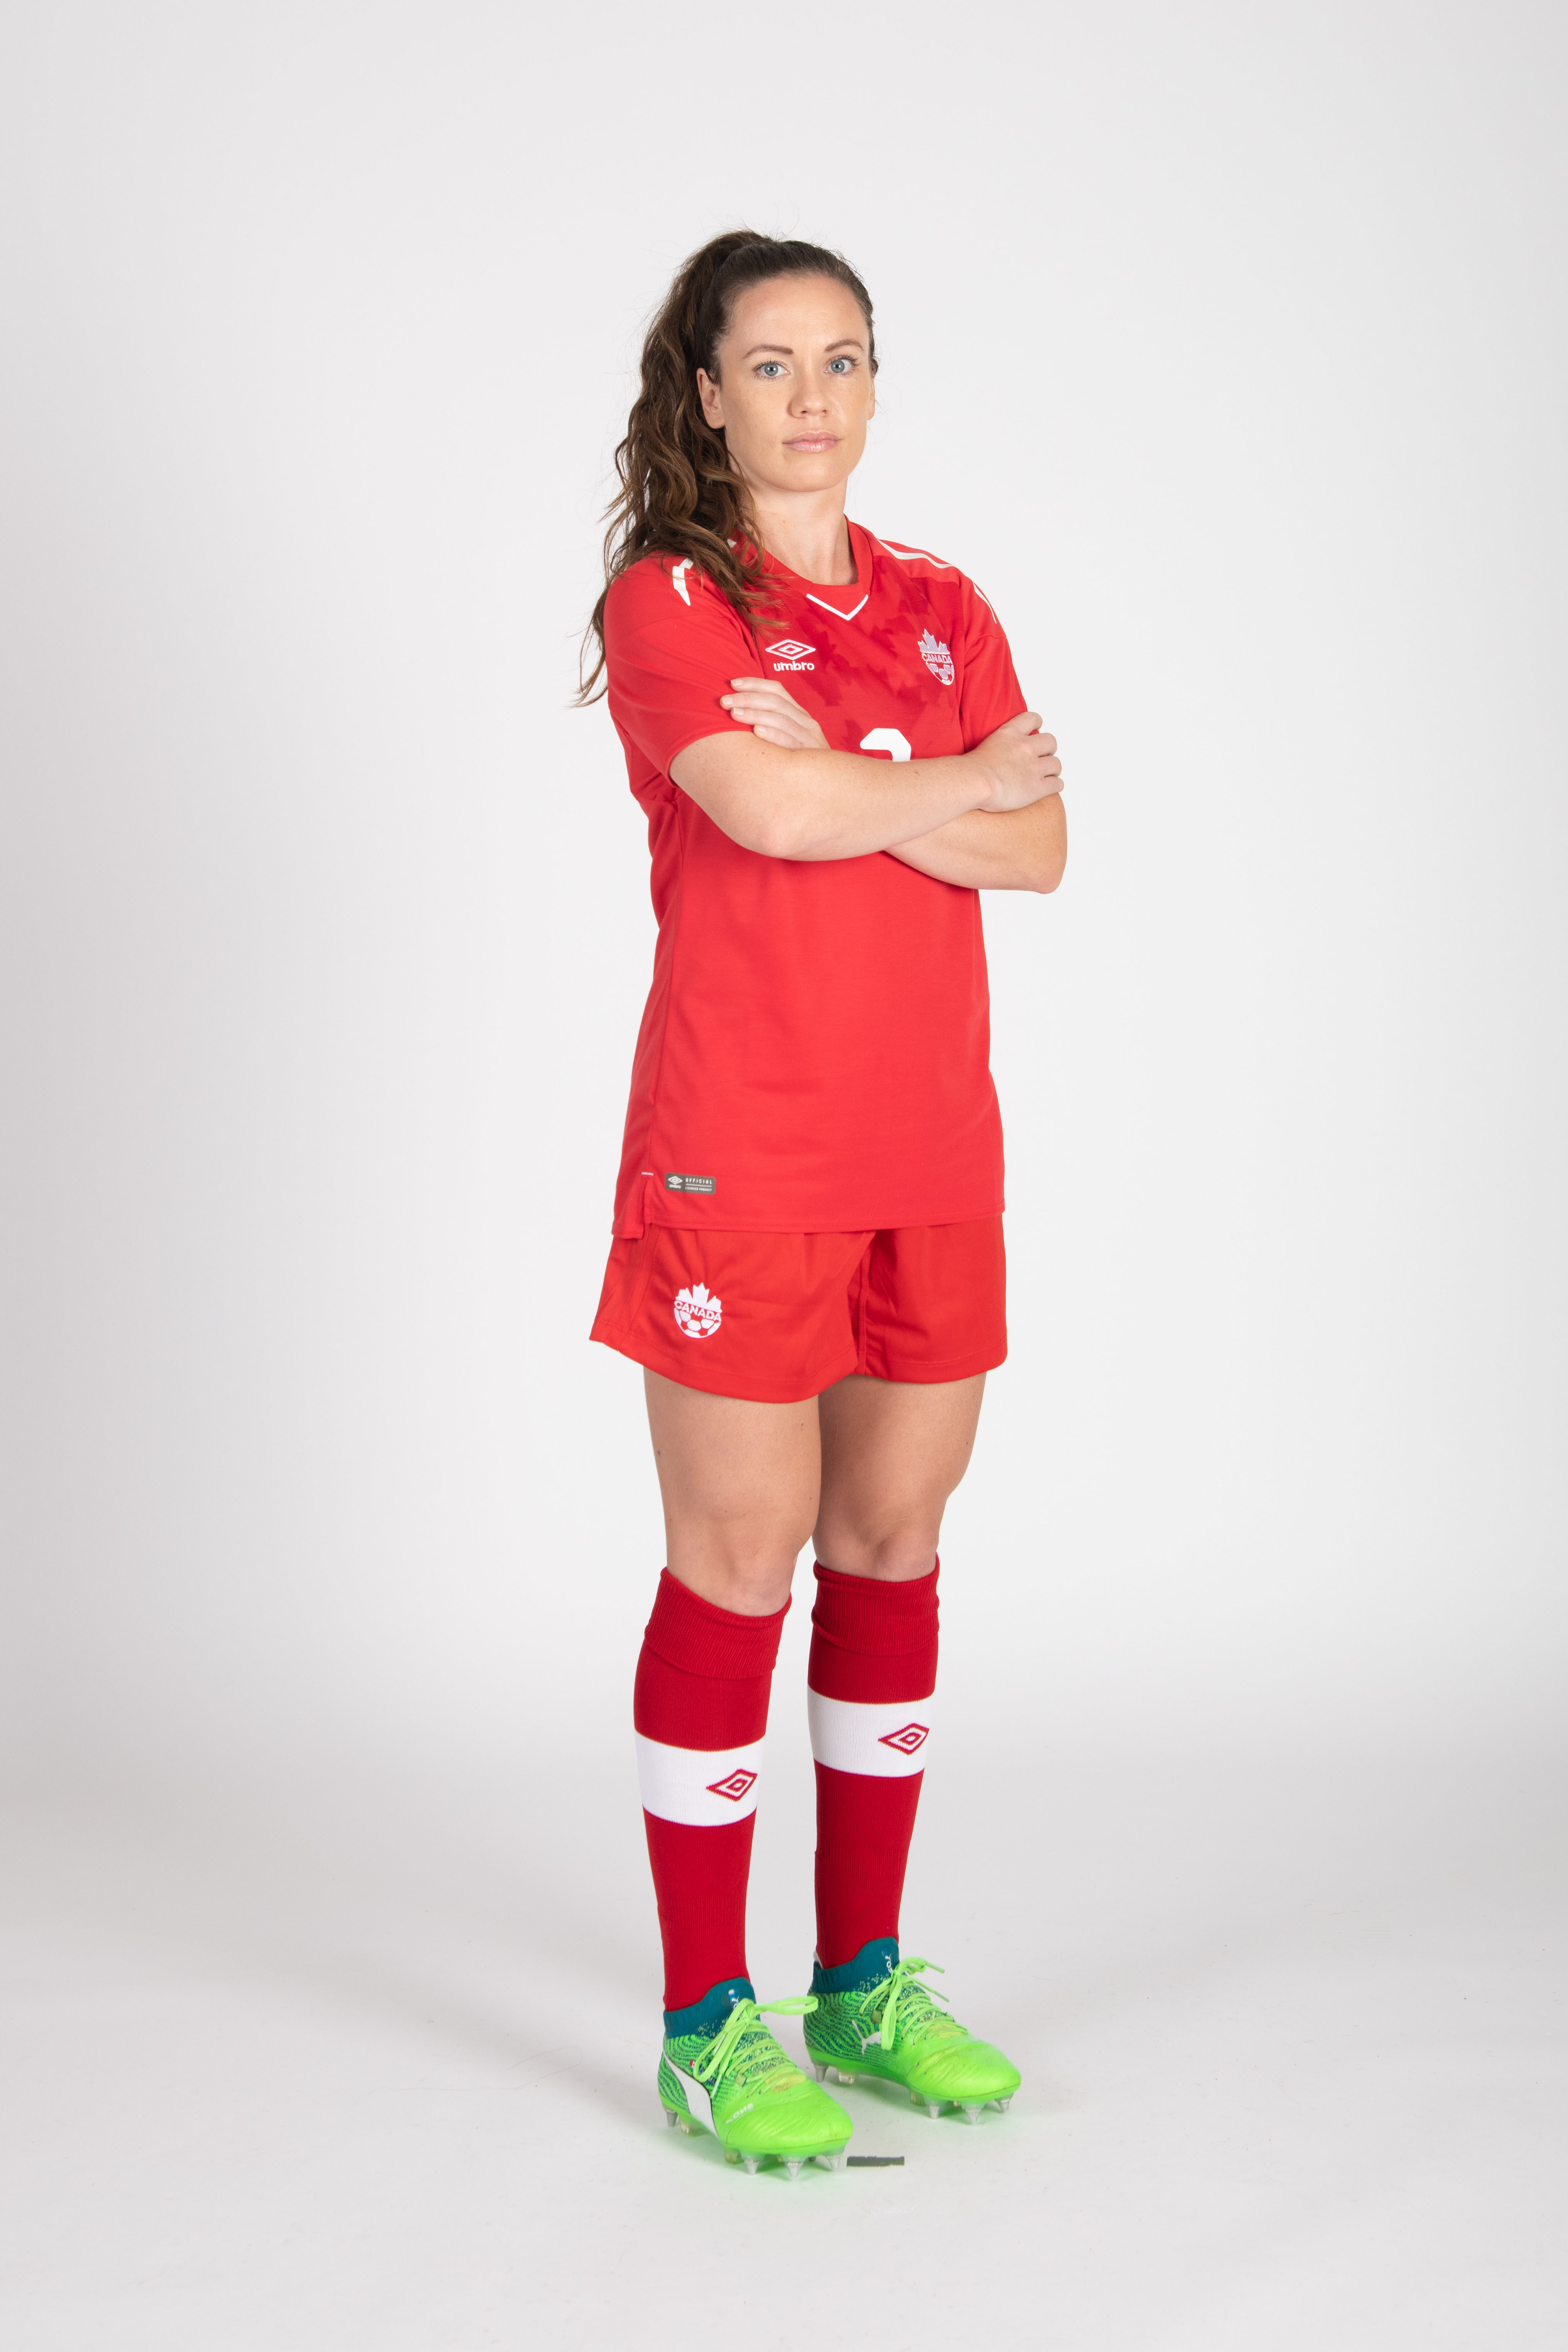 20180604_CANWNT_Chapman_byBazyl13